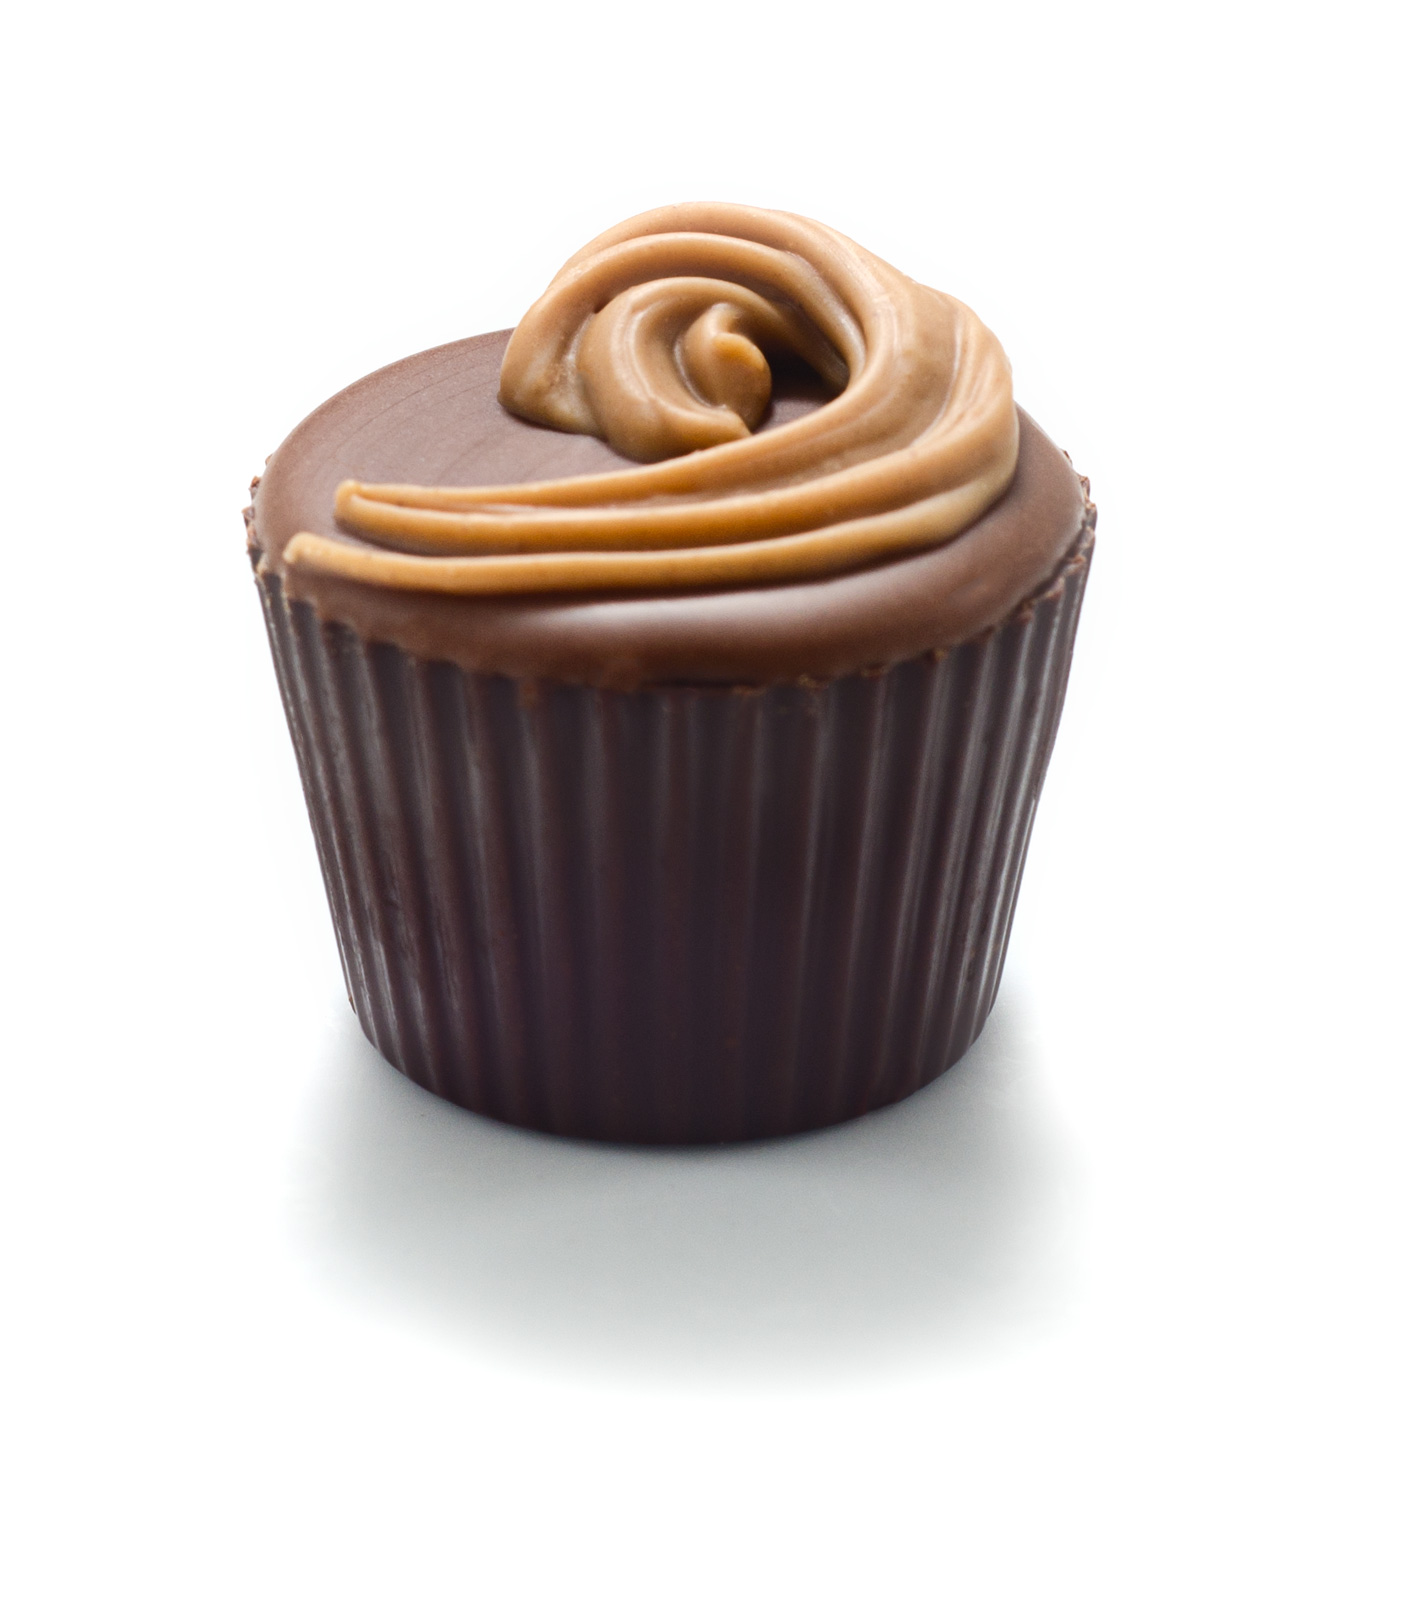 <b>VIVIAN</b><P ALIGN=Left>Dark chocolate bucket with Butterscotch center finished with milk chocolate and a praline swirl</P>